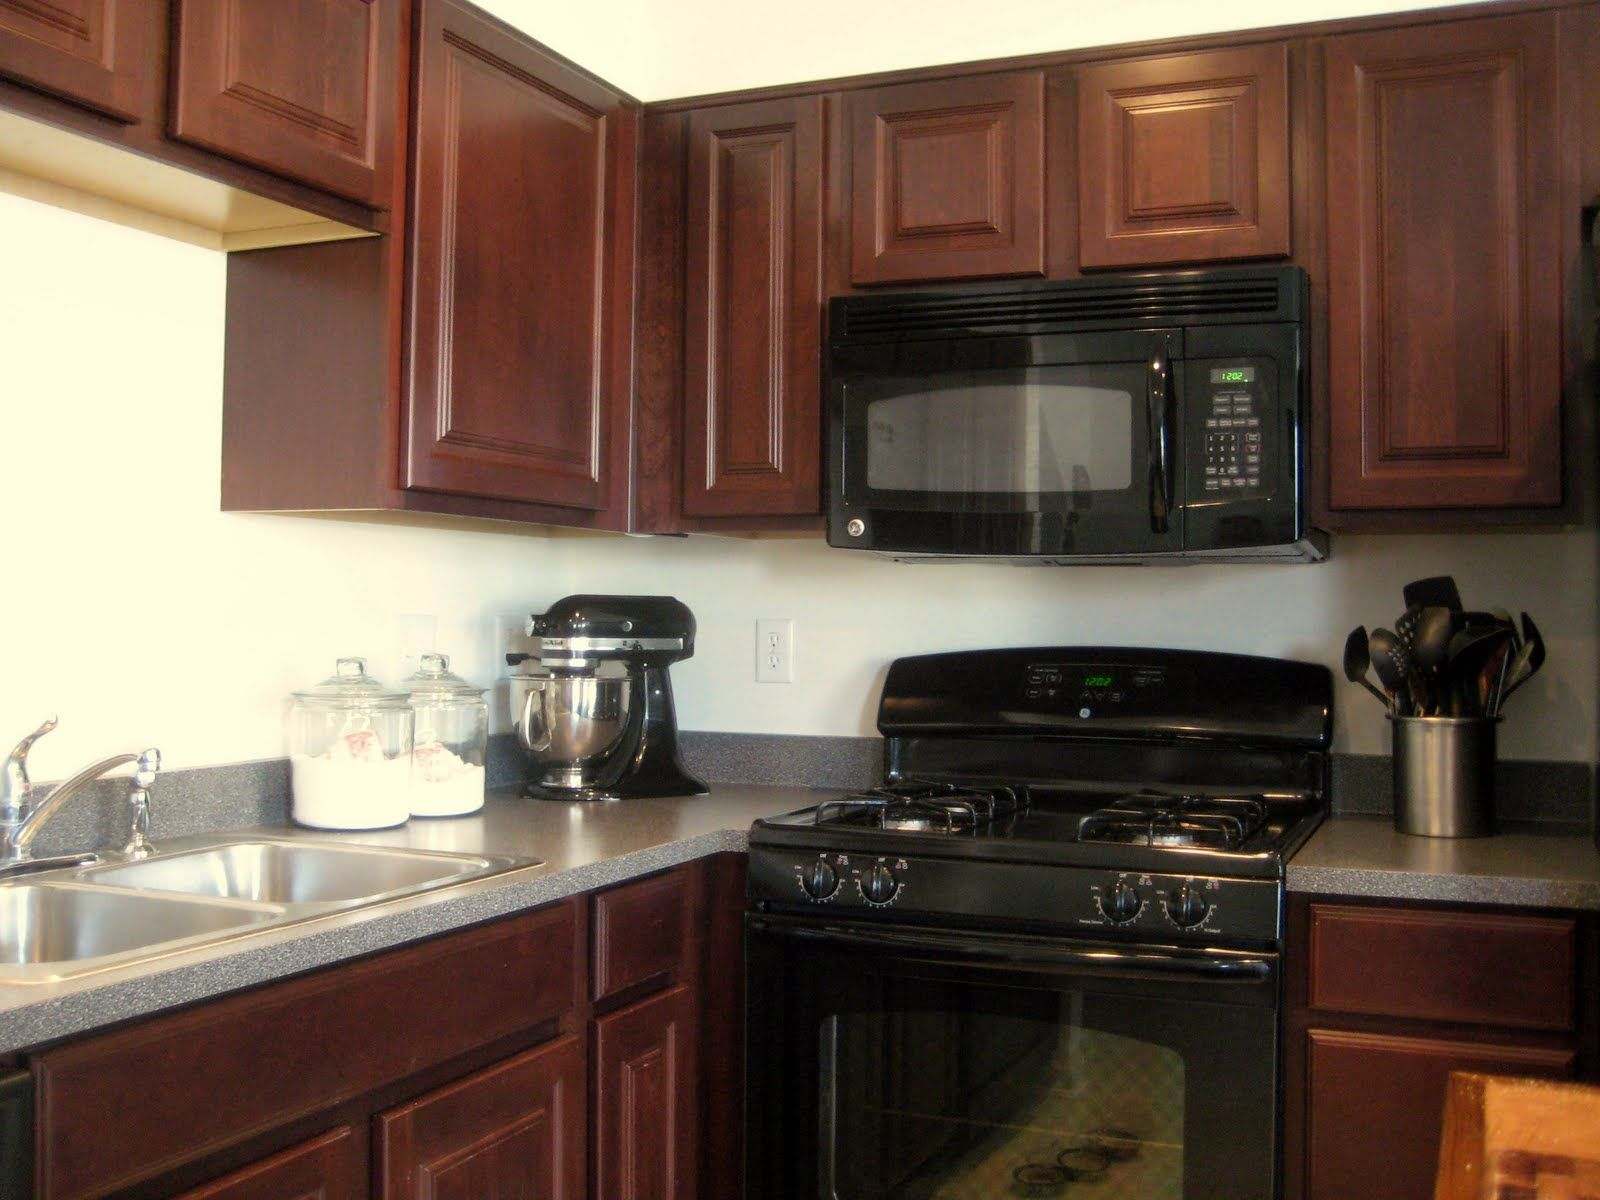 Kitchen Backsplash Cherry Cabinets White Counter I Like This Look A Lot Black Appliances Cherry Cabinets And